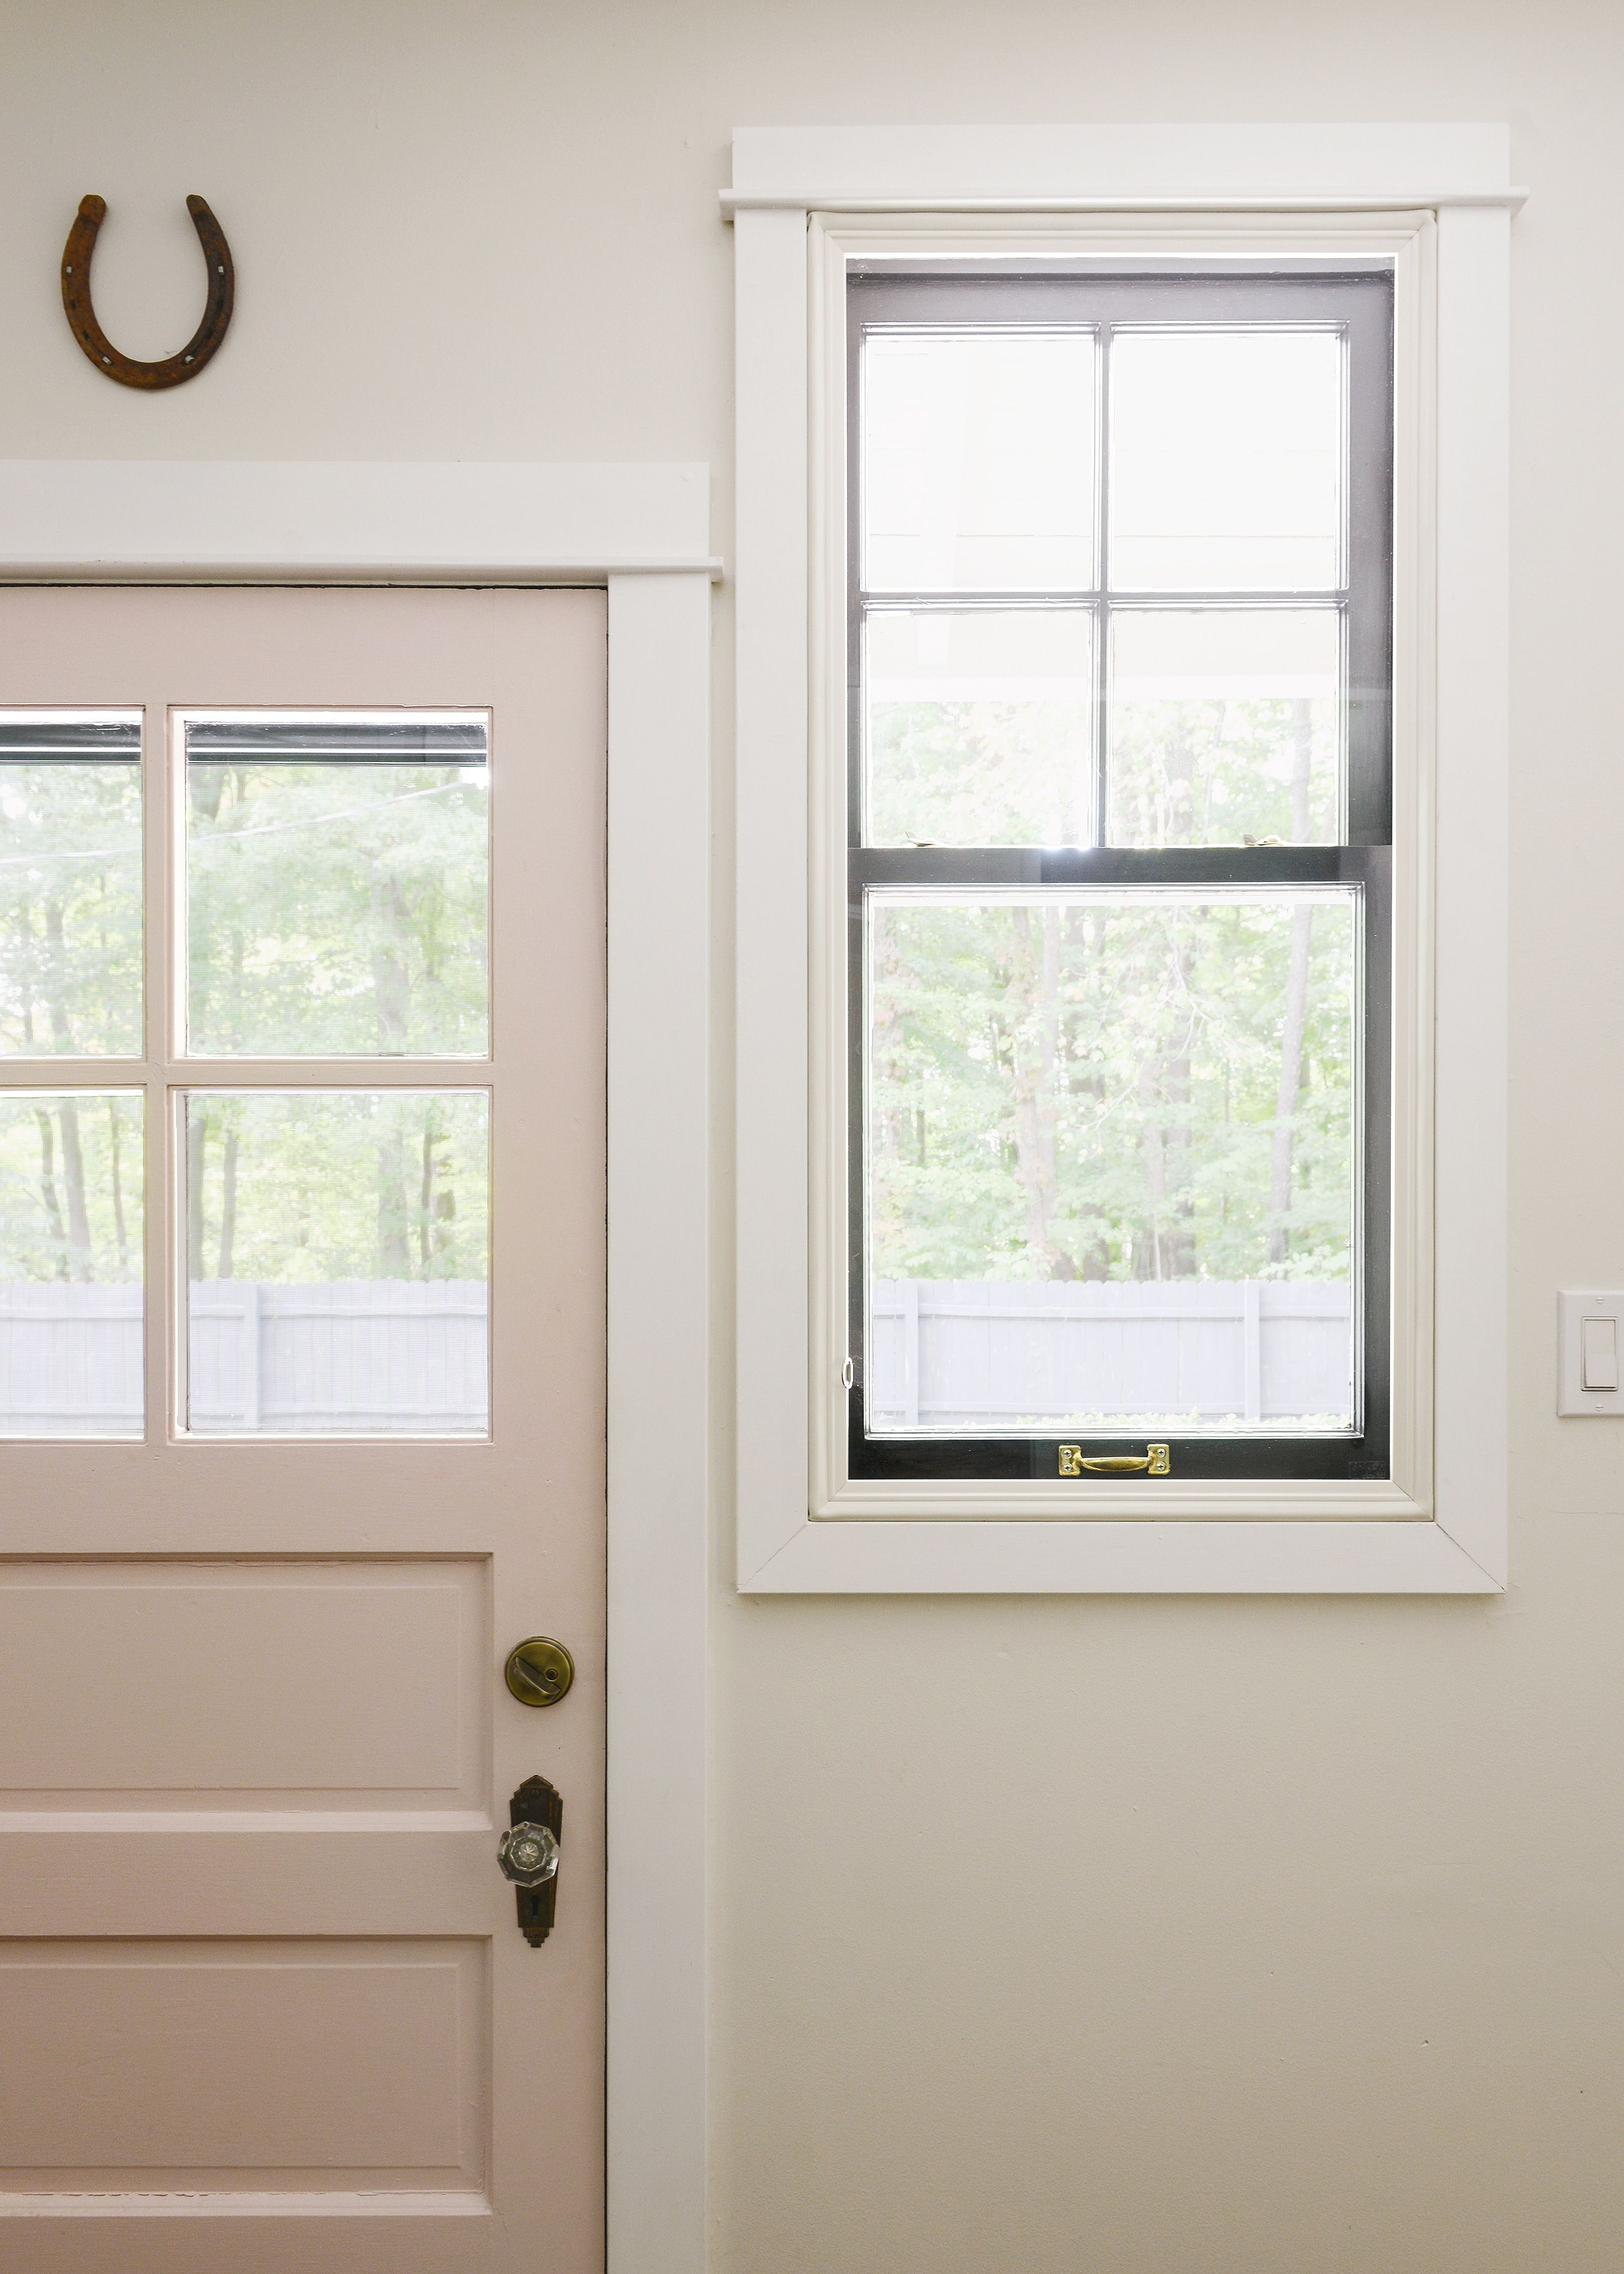 A Storm Window That Works from the Inside, Out Windows